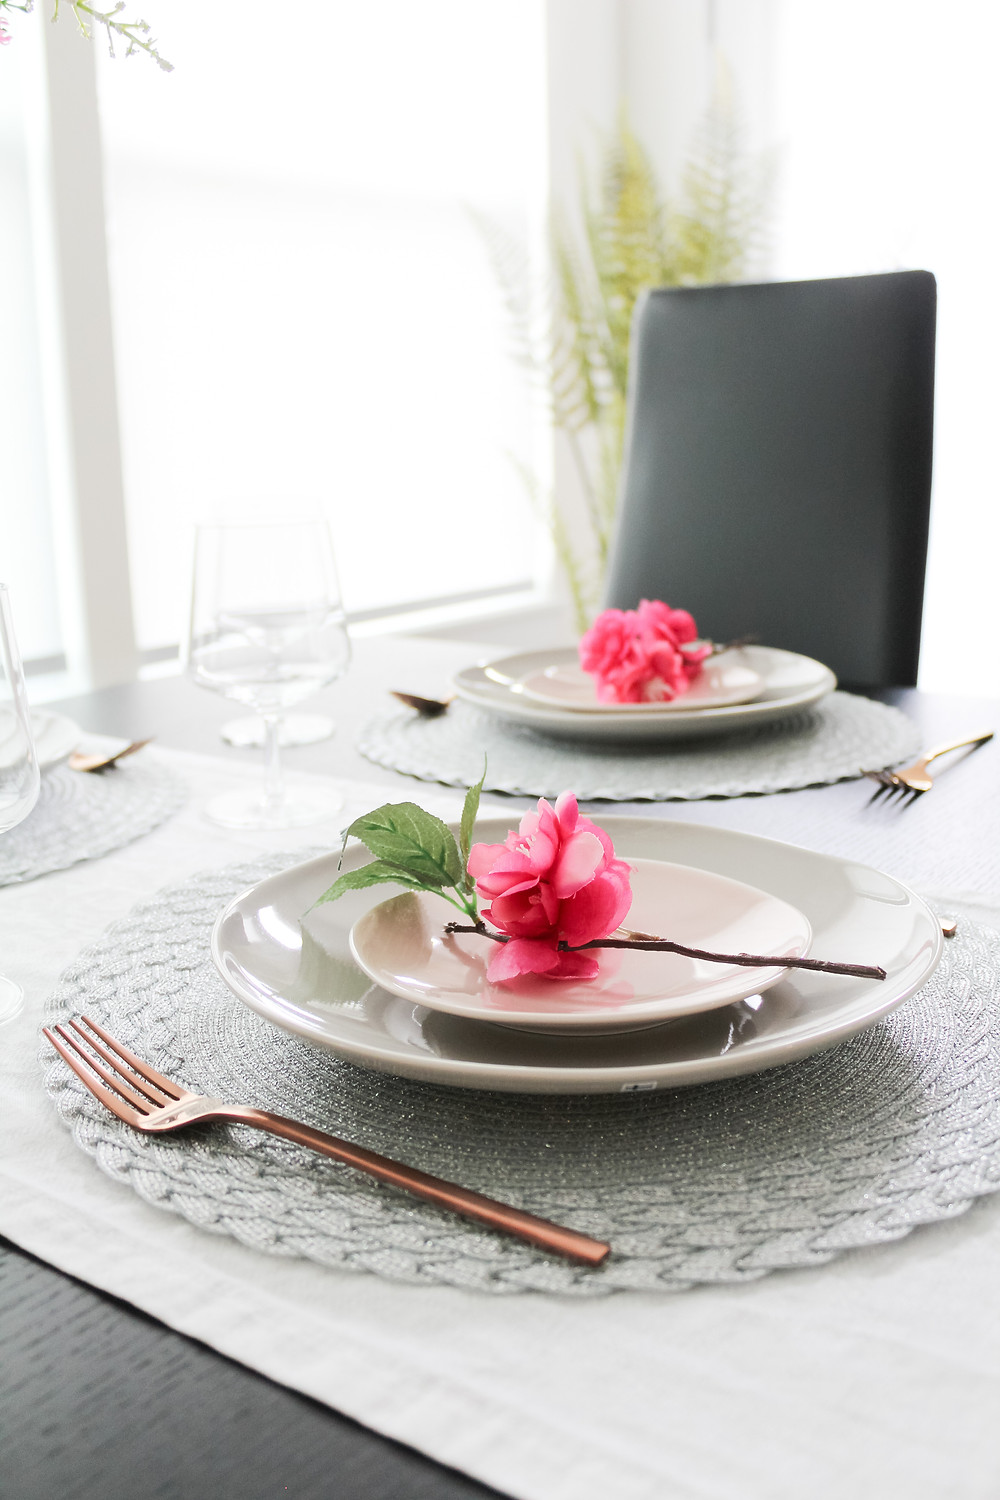 Modern Spring Touches In The Dining Room. #springdecor #springdecorating #modernspringvibe